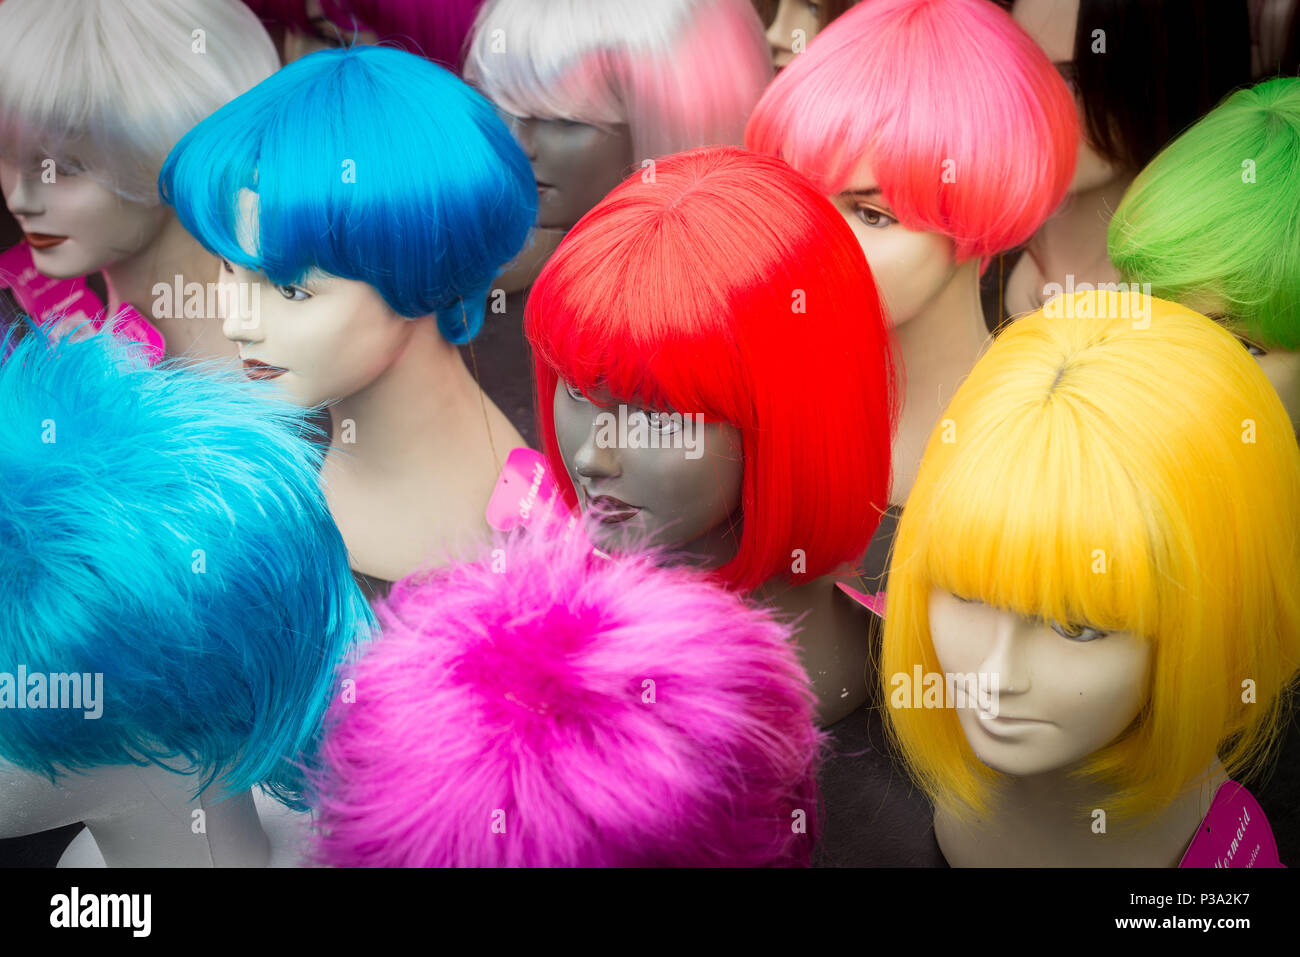 Colorful Hairstyles Stock Photos & Colorful Hairstyles Stock Images ...